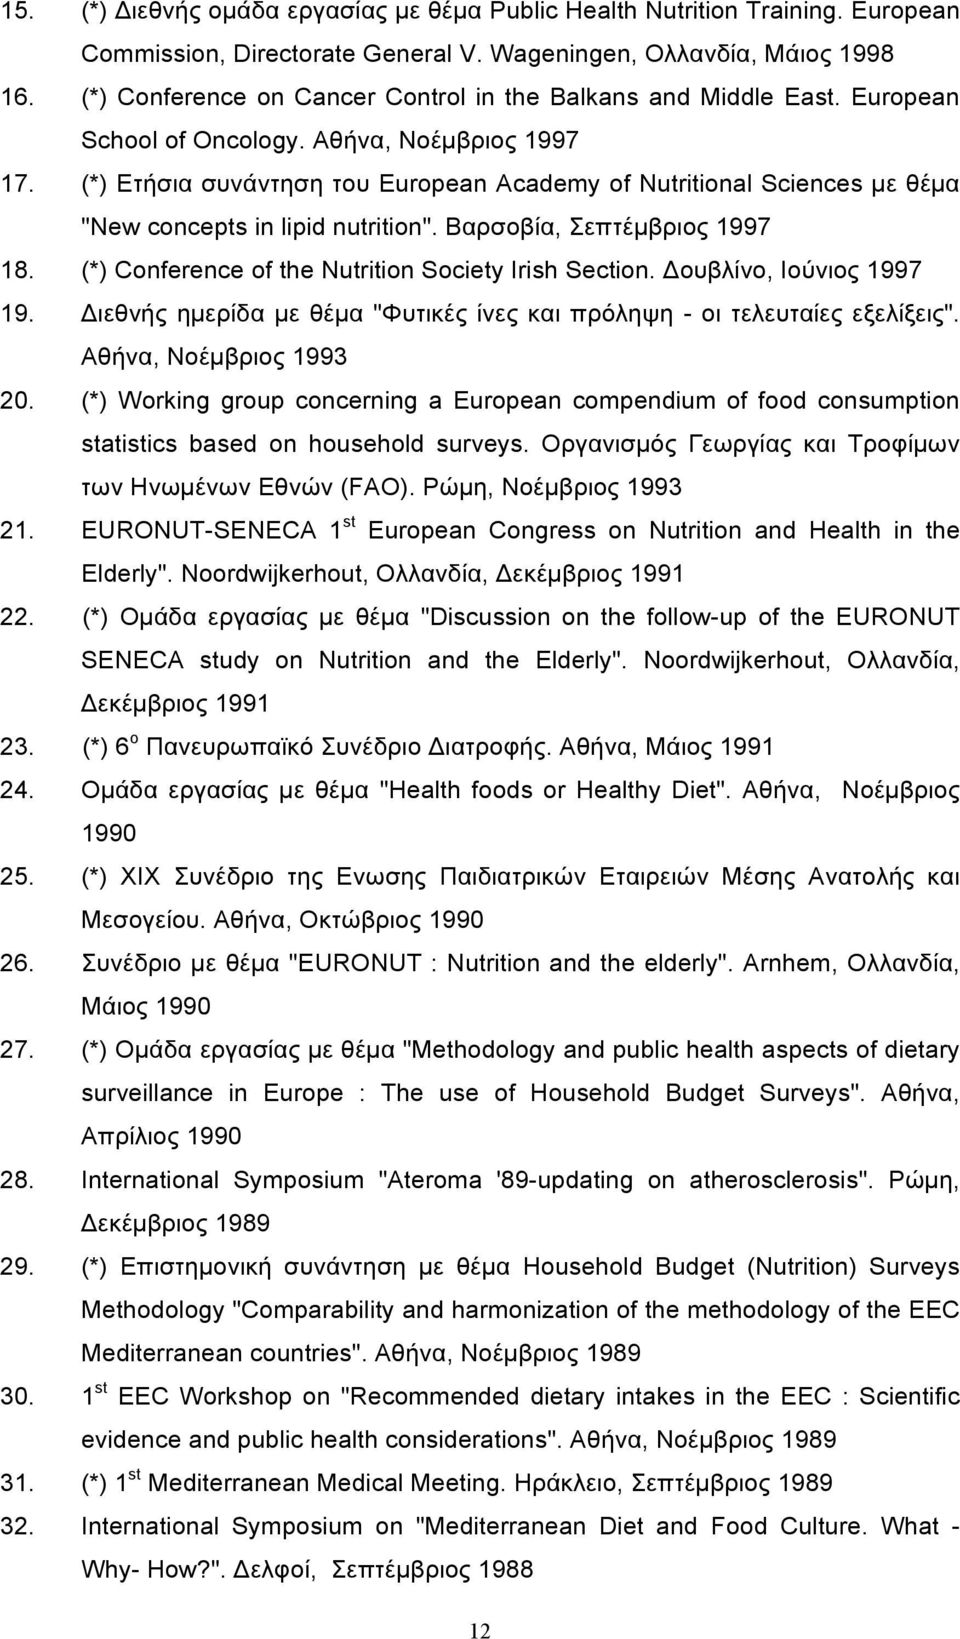 "(*) Ετήσια συνάντηση του European Academy of Nutritional Sciences µε θέµα ""New concepts in lipid nutrition"". Βαρσοβία, Σεπτέµβριος 1997 18. (*) Conference of the Nutrition Society Irish Section."